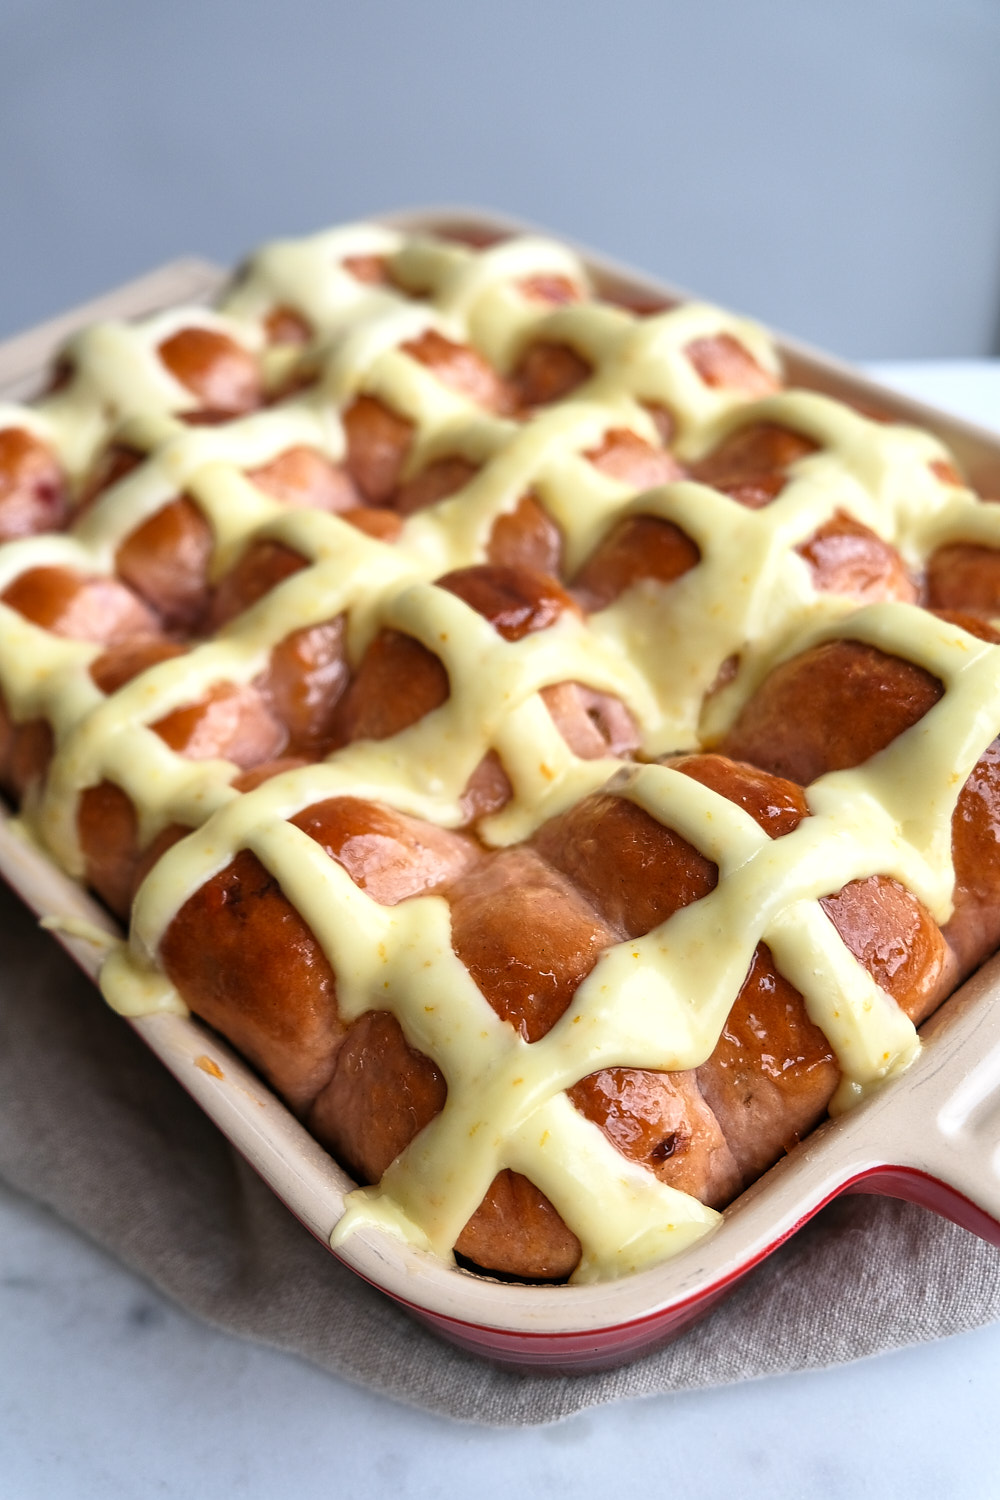 A pan of hot cross buns